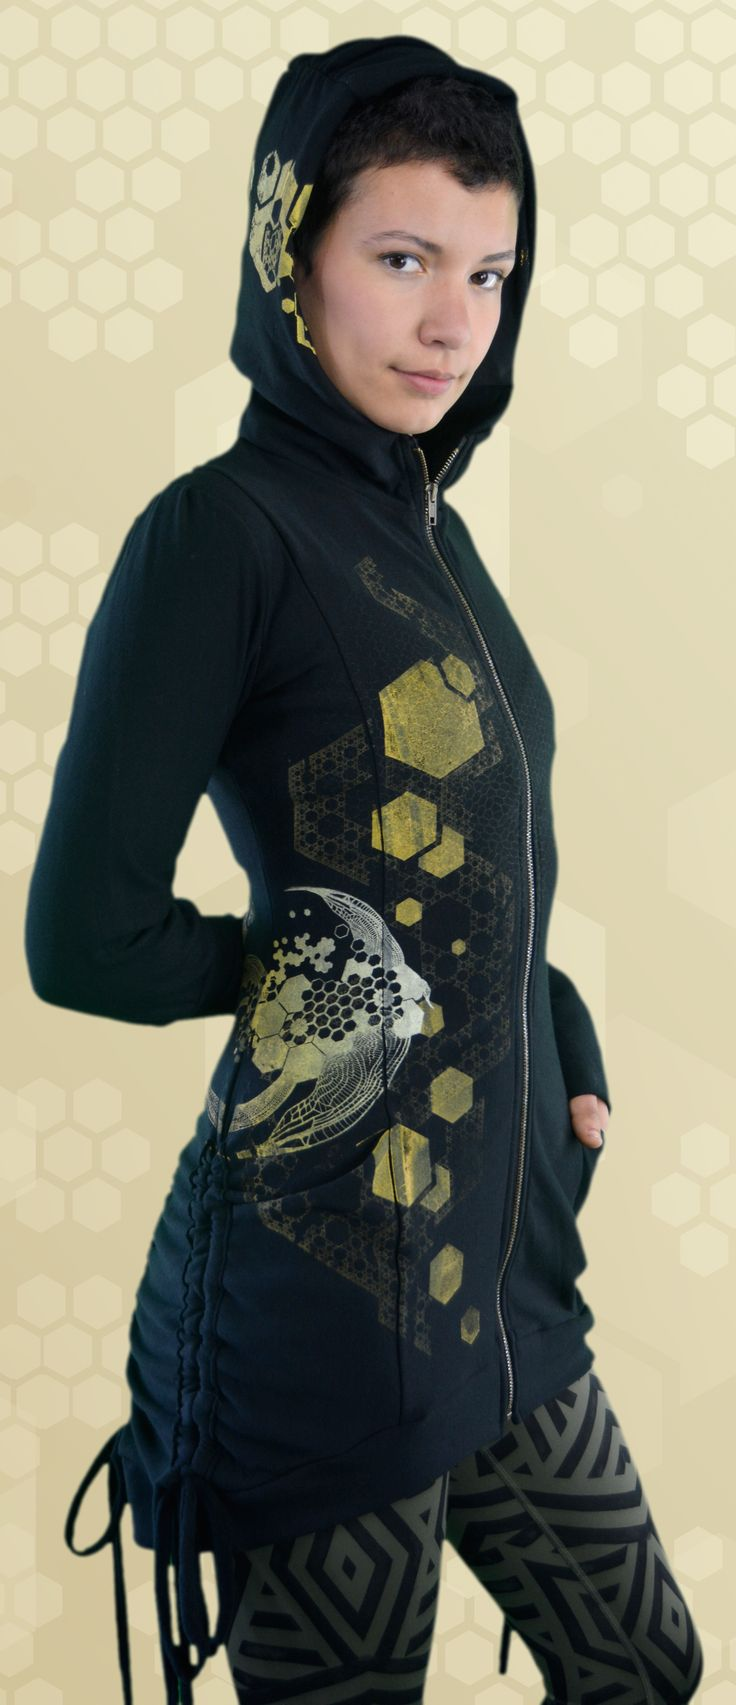 Bamboo Bustle Jacket for women, ethical fashion made in Canada. Printed with sacred geometry, bee, bees, hive medicine art.